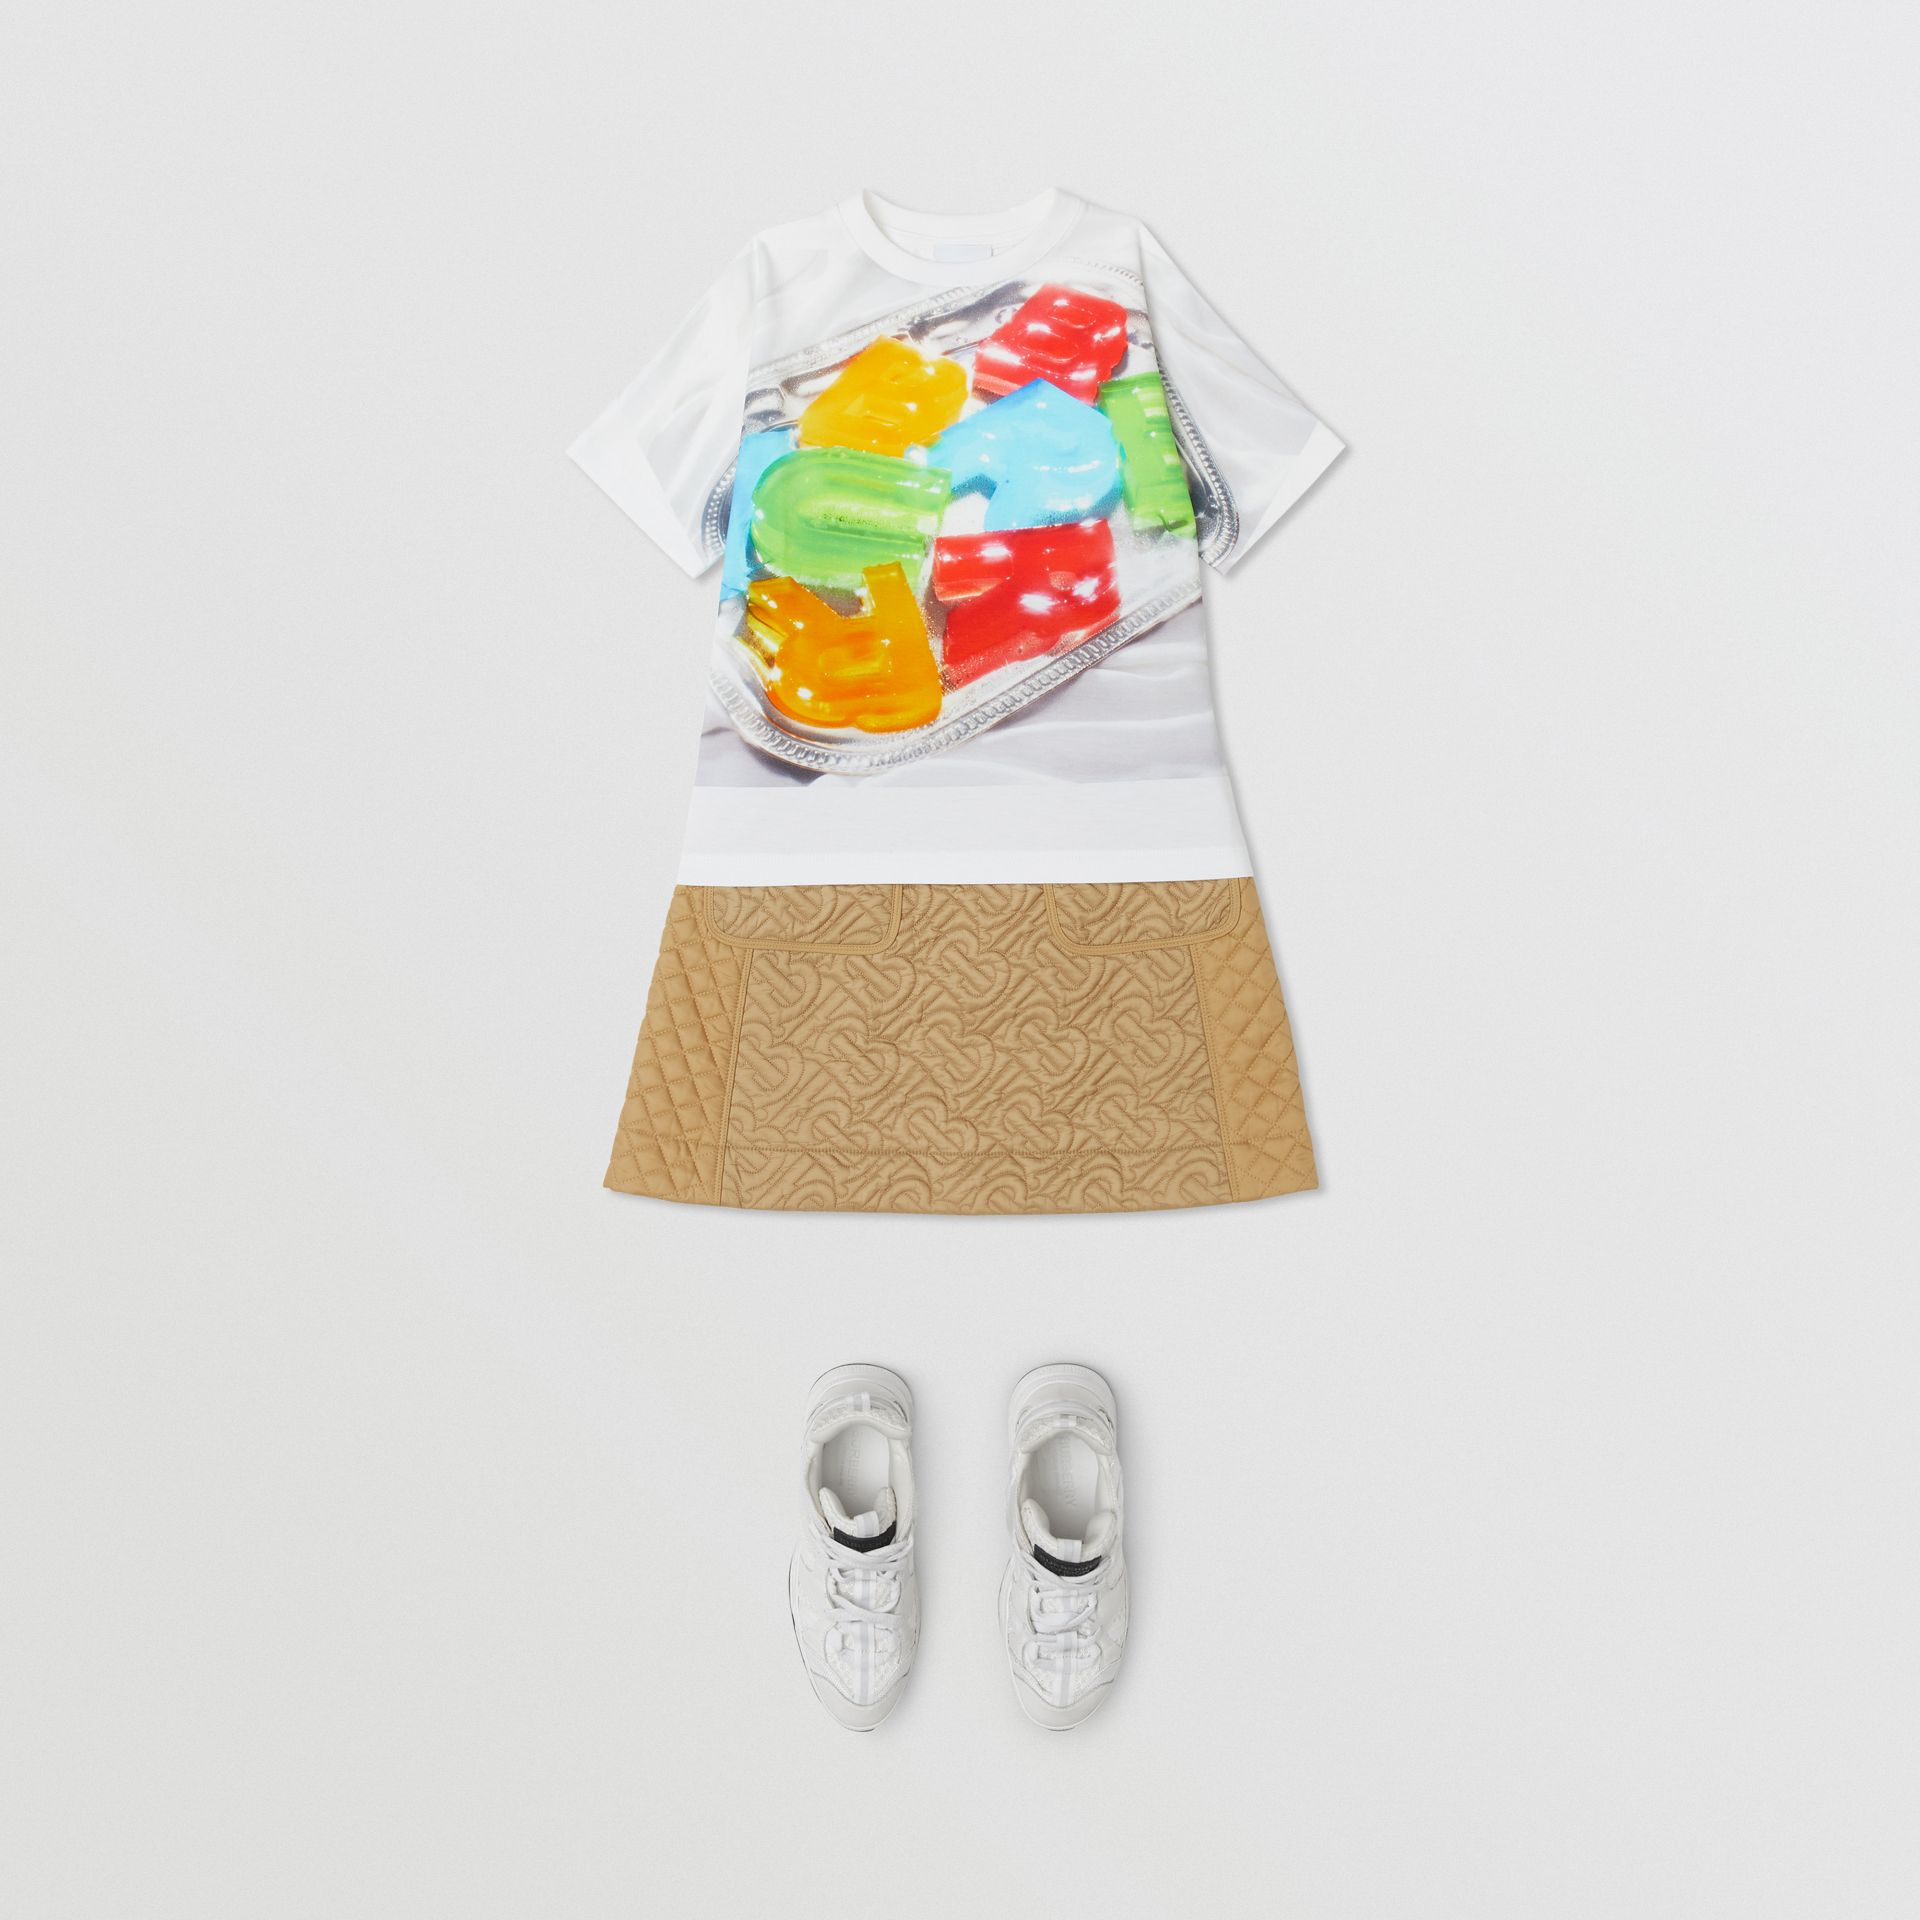 Confectionery Print Cotton T-shirt in Multicolour | Burberry - gallery image 2